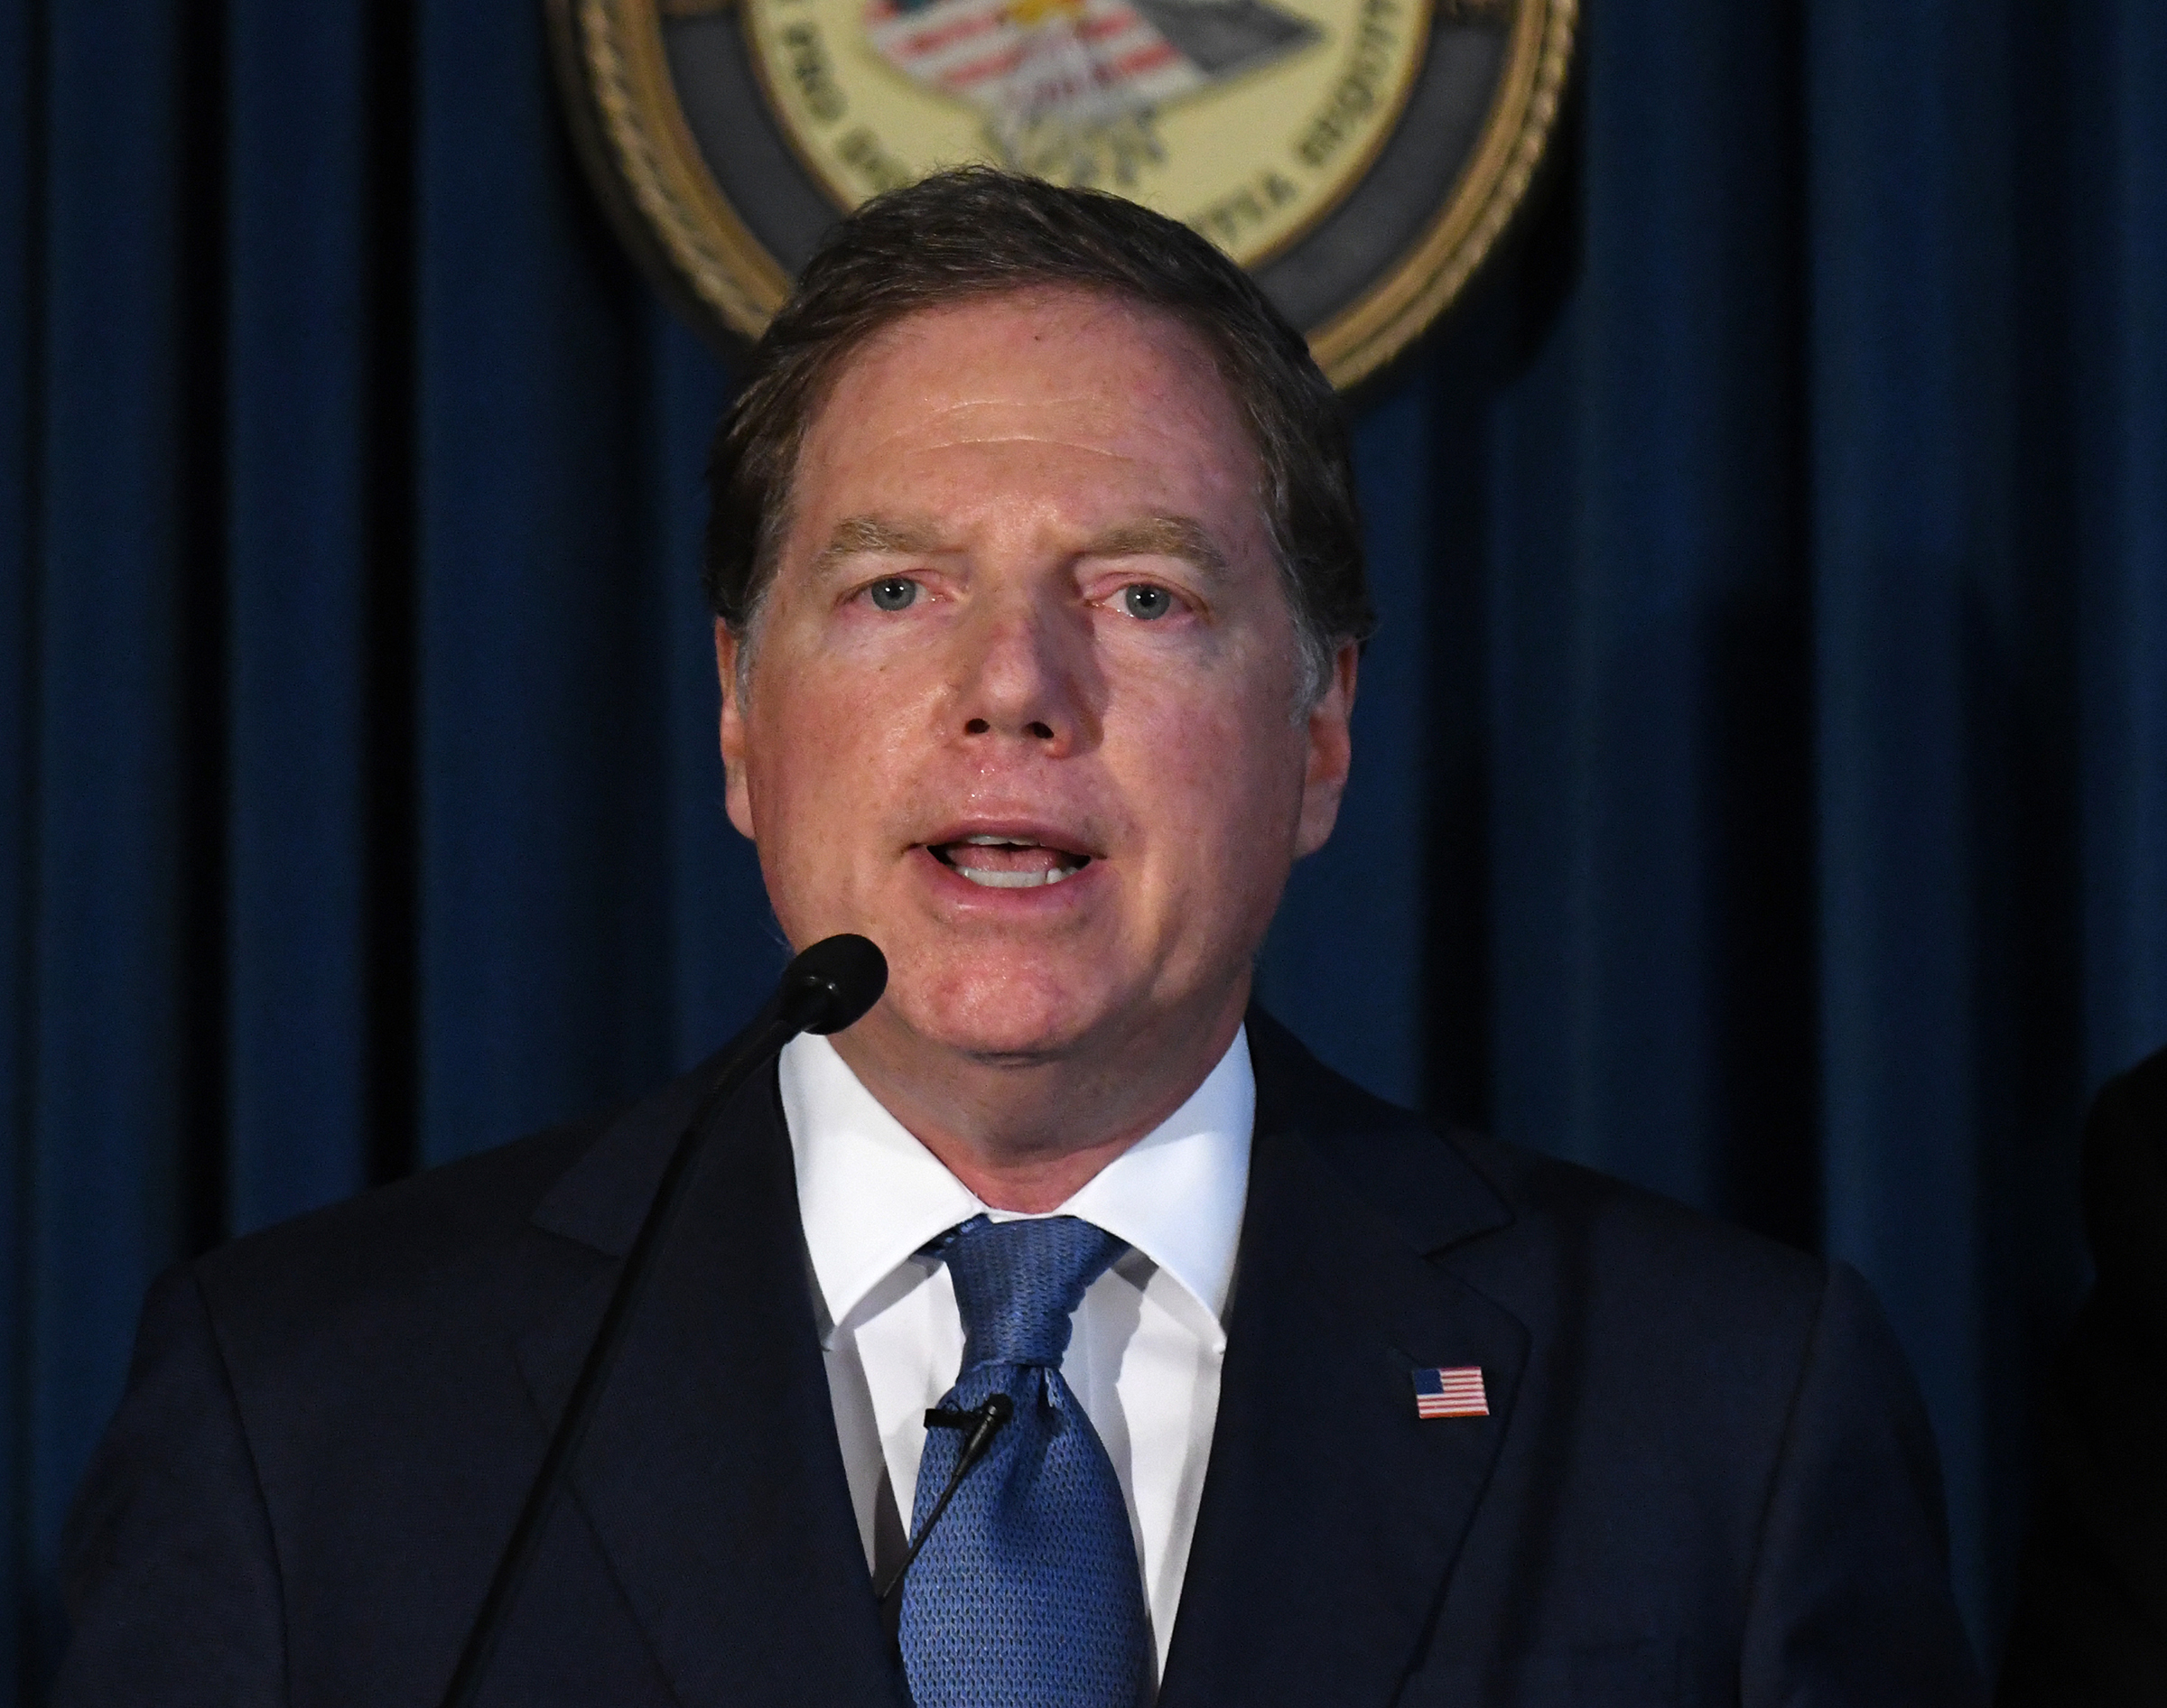 Geoffrey Berman, former U.S. attorney for the Southern District of New York, speaks during a news conference in New York on July 8, 2019.